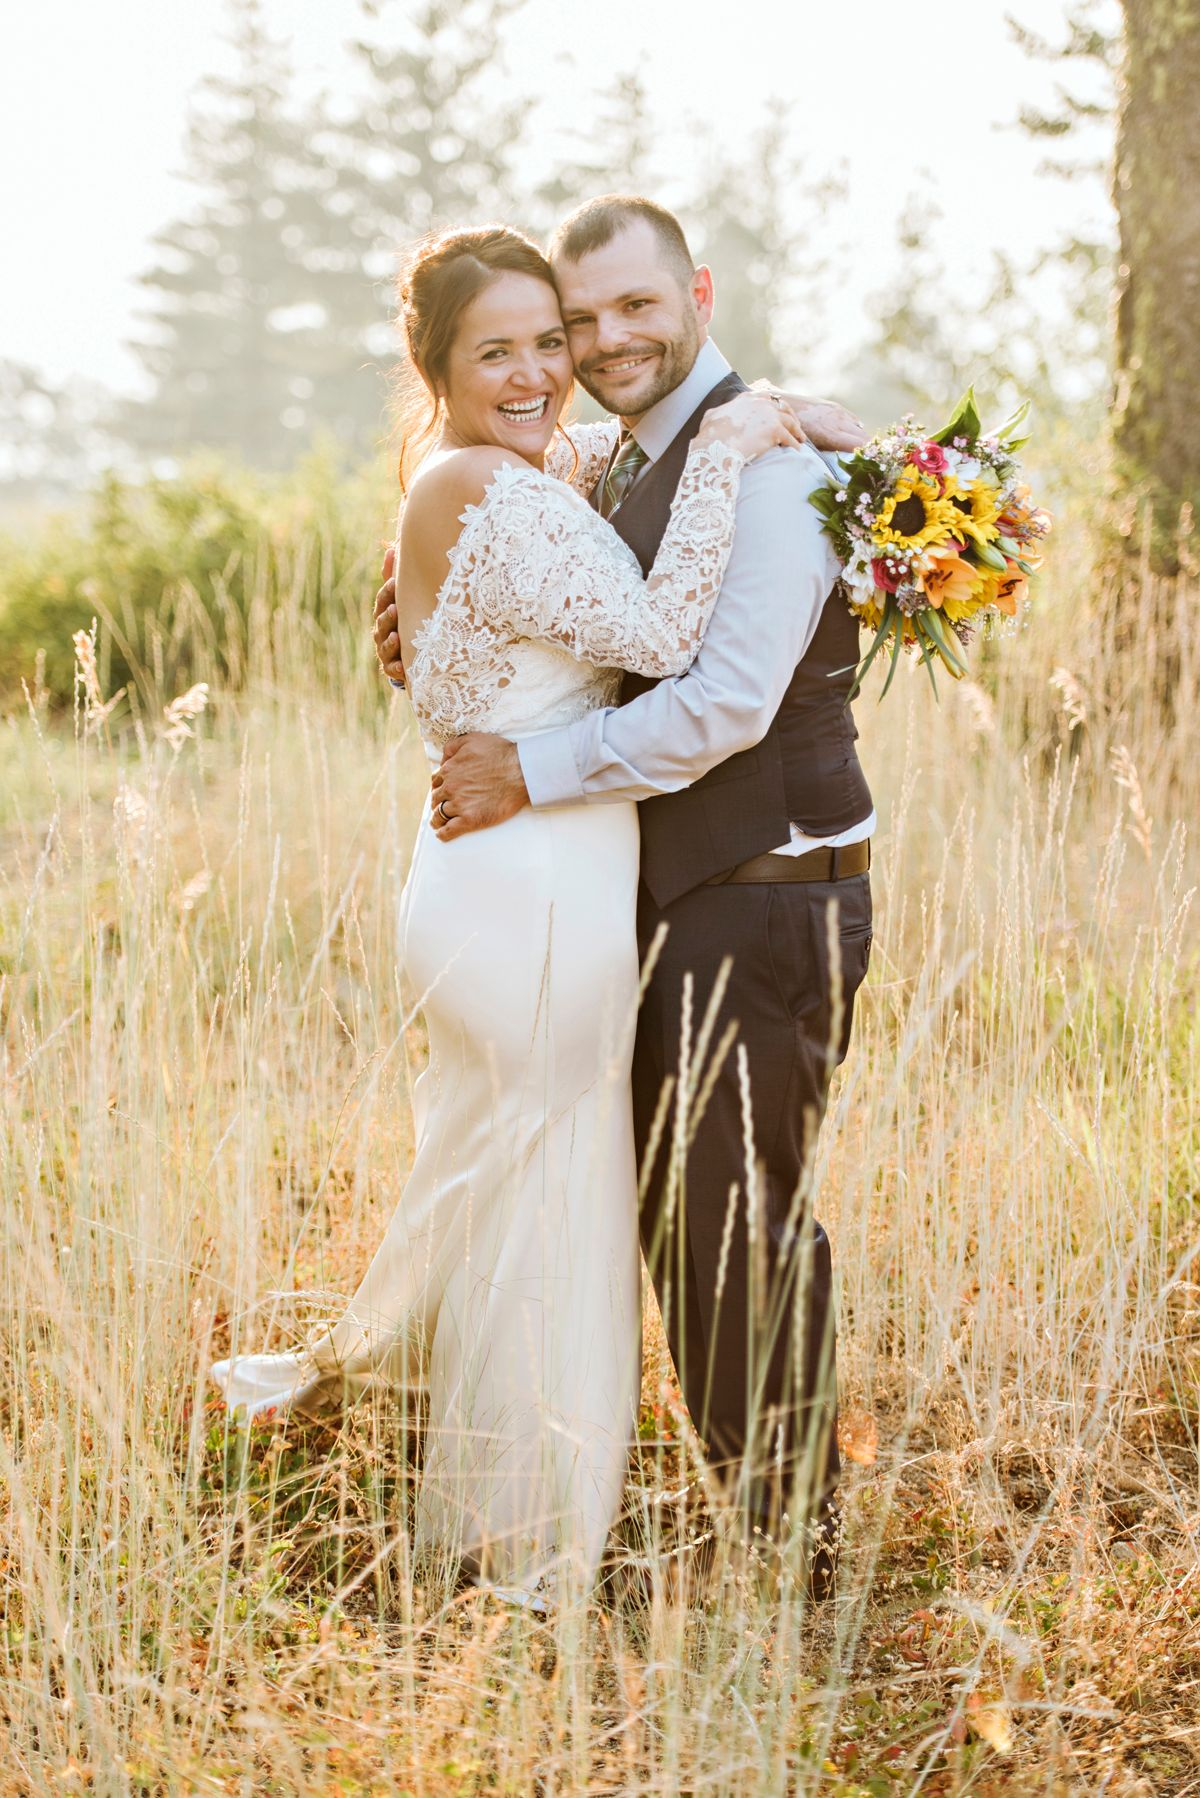 Bride and groom pose in the tall grass after wedding